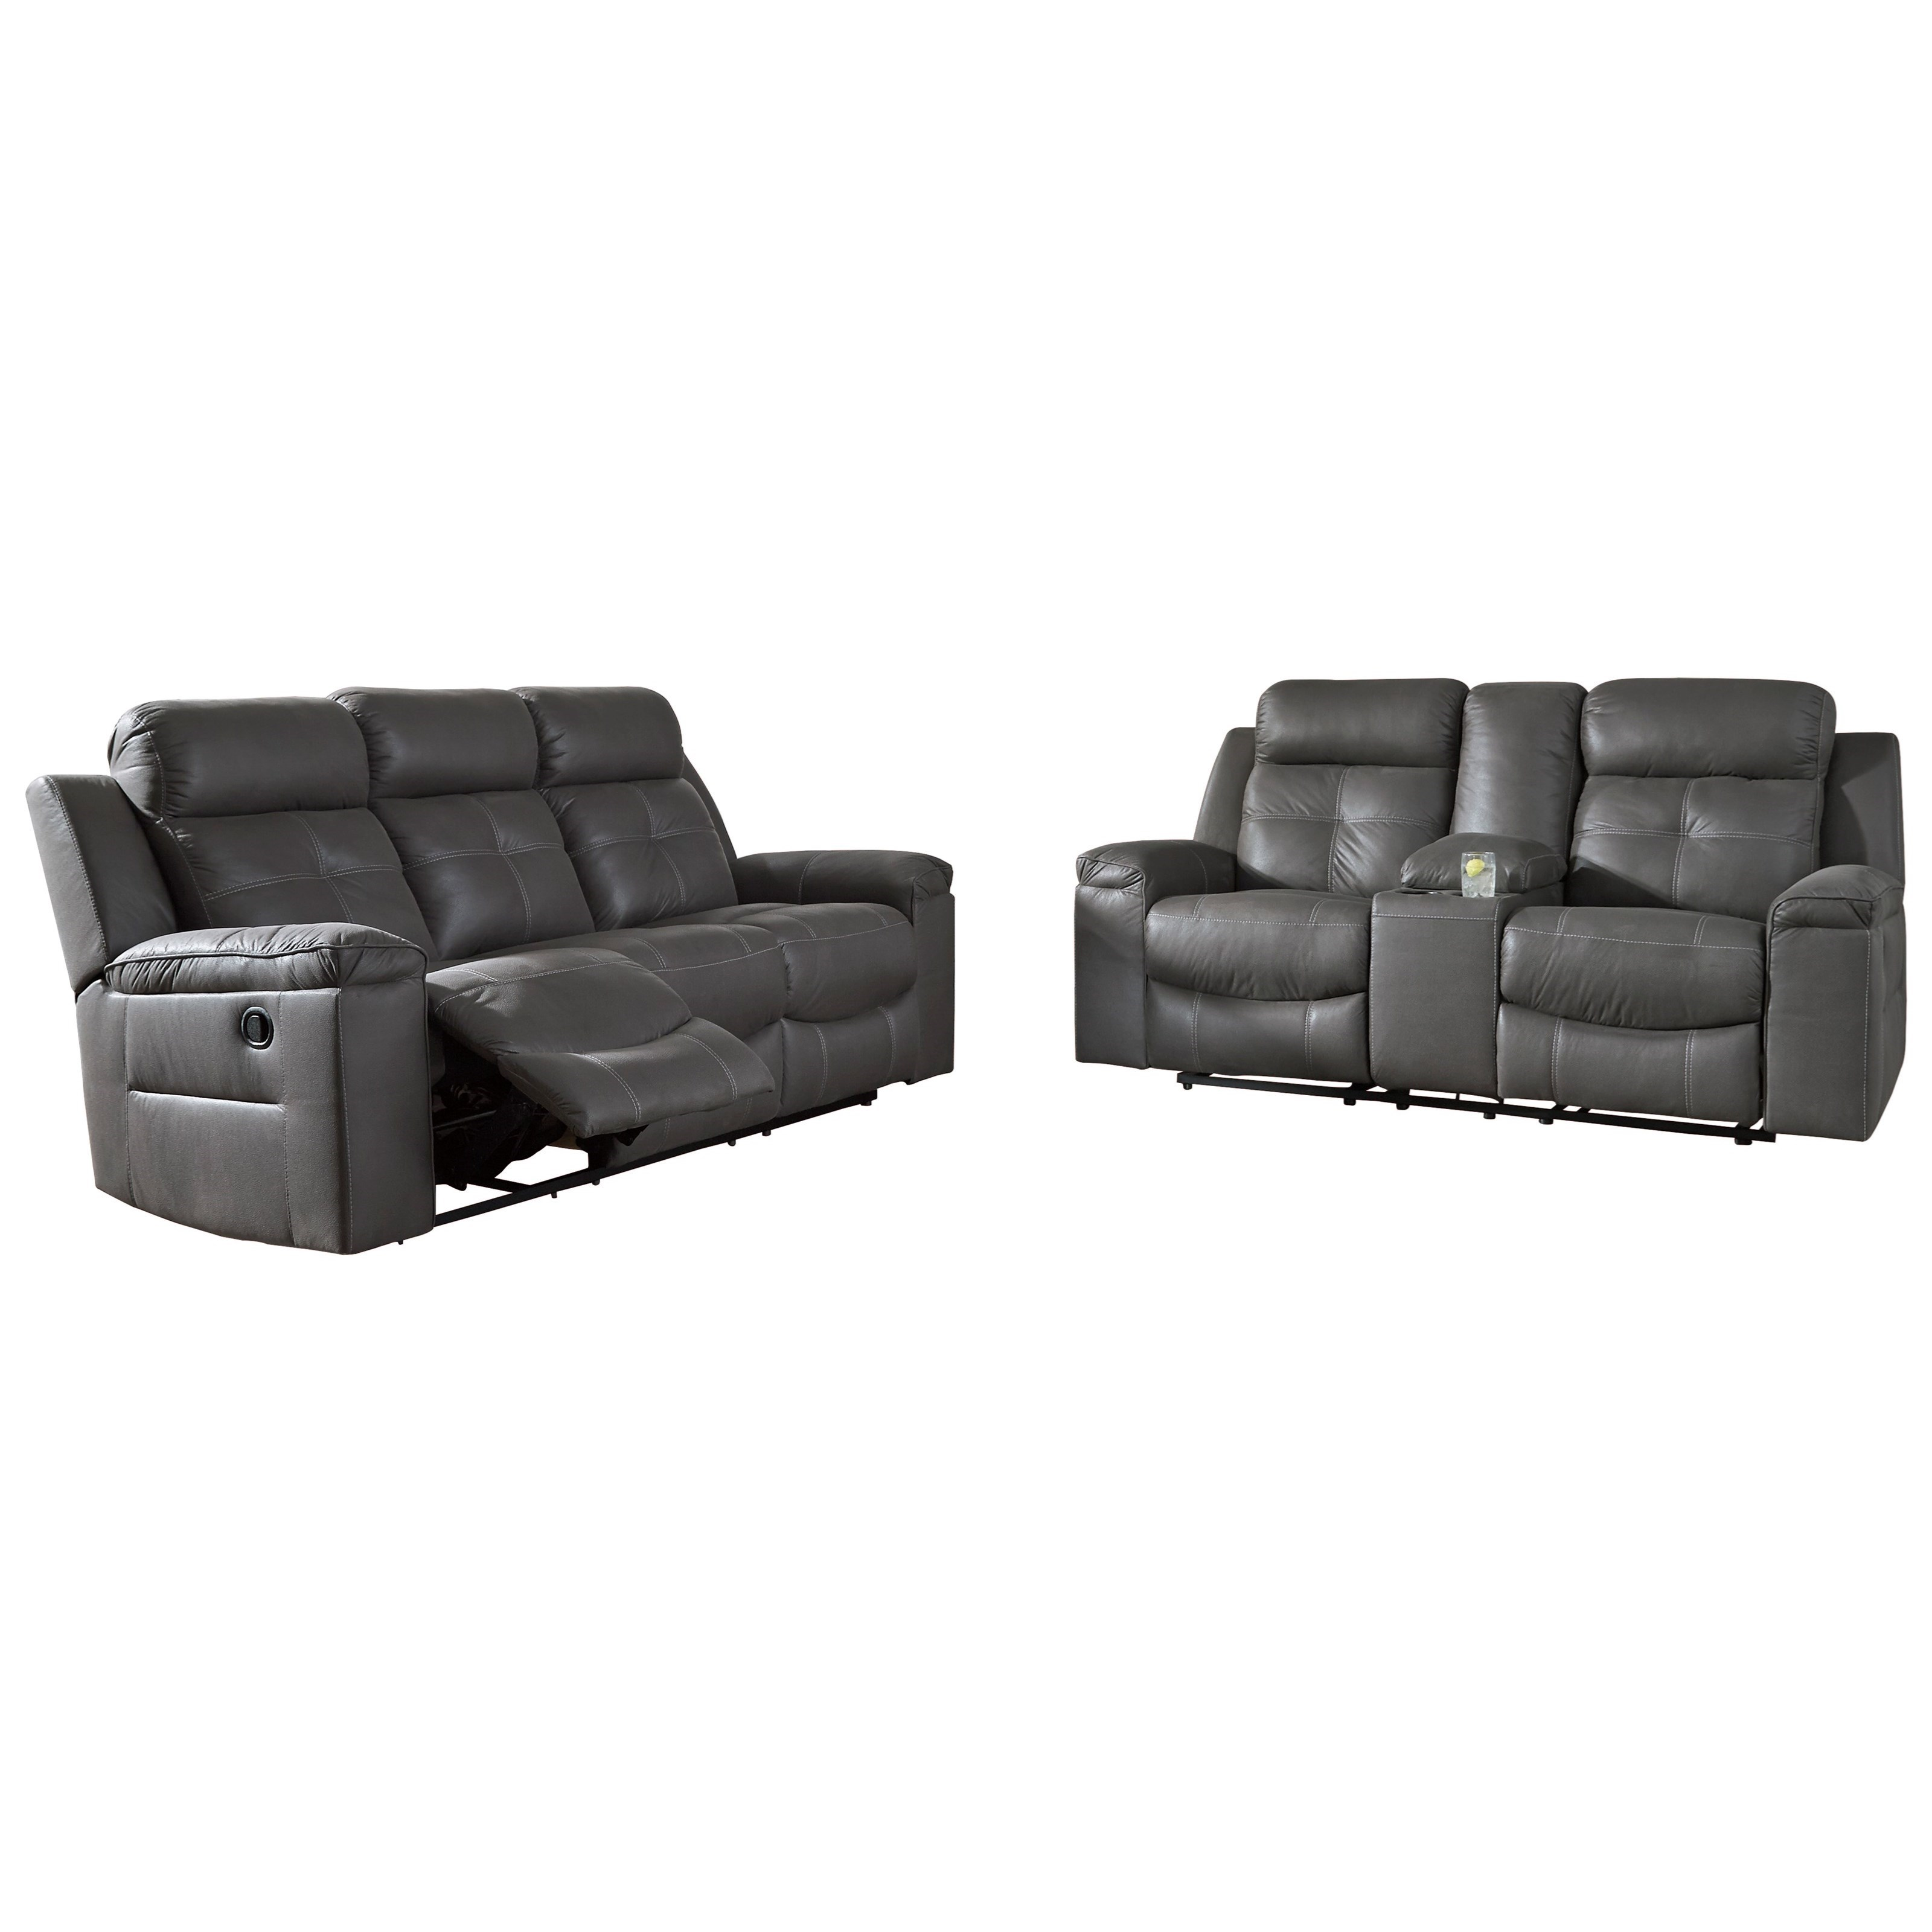 Jesolo Reclining Living Room Group by Signature Design by Ashley at Northeast Factory Direct